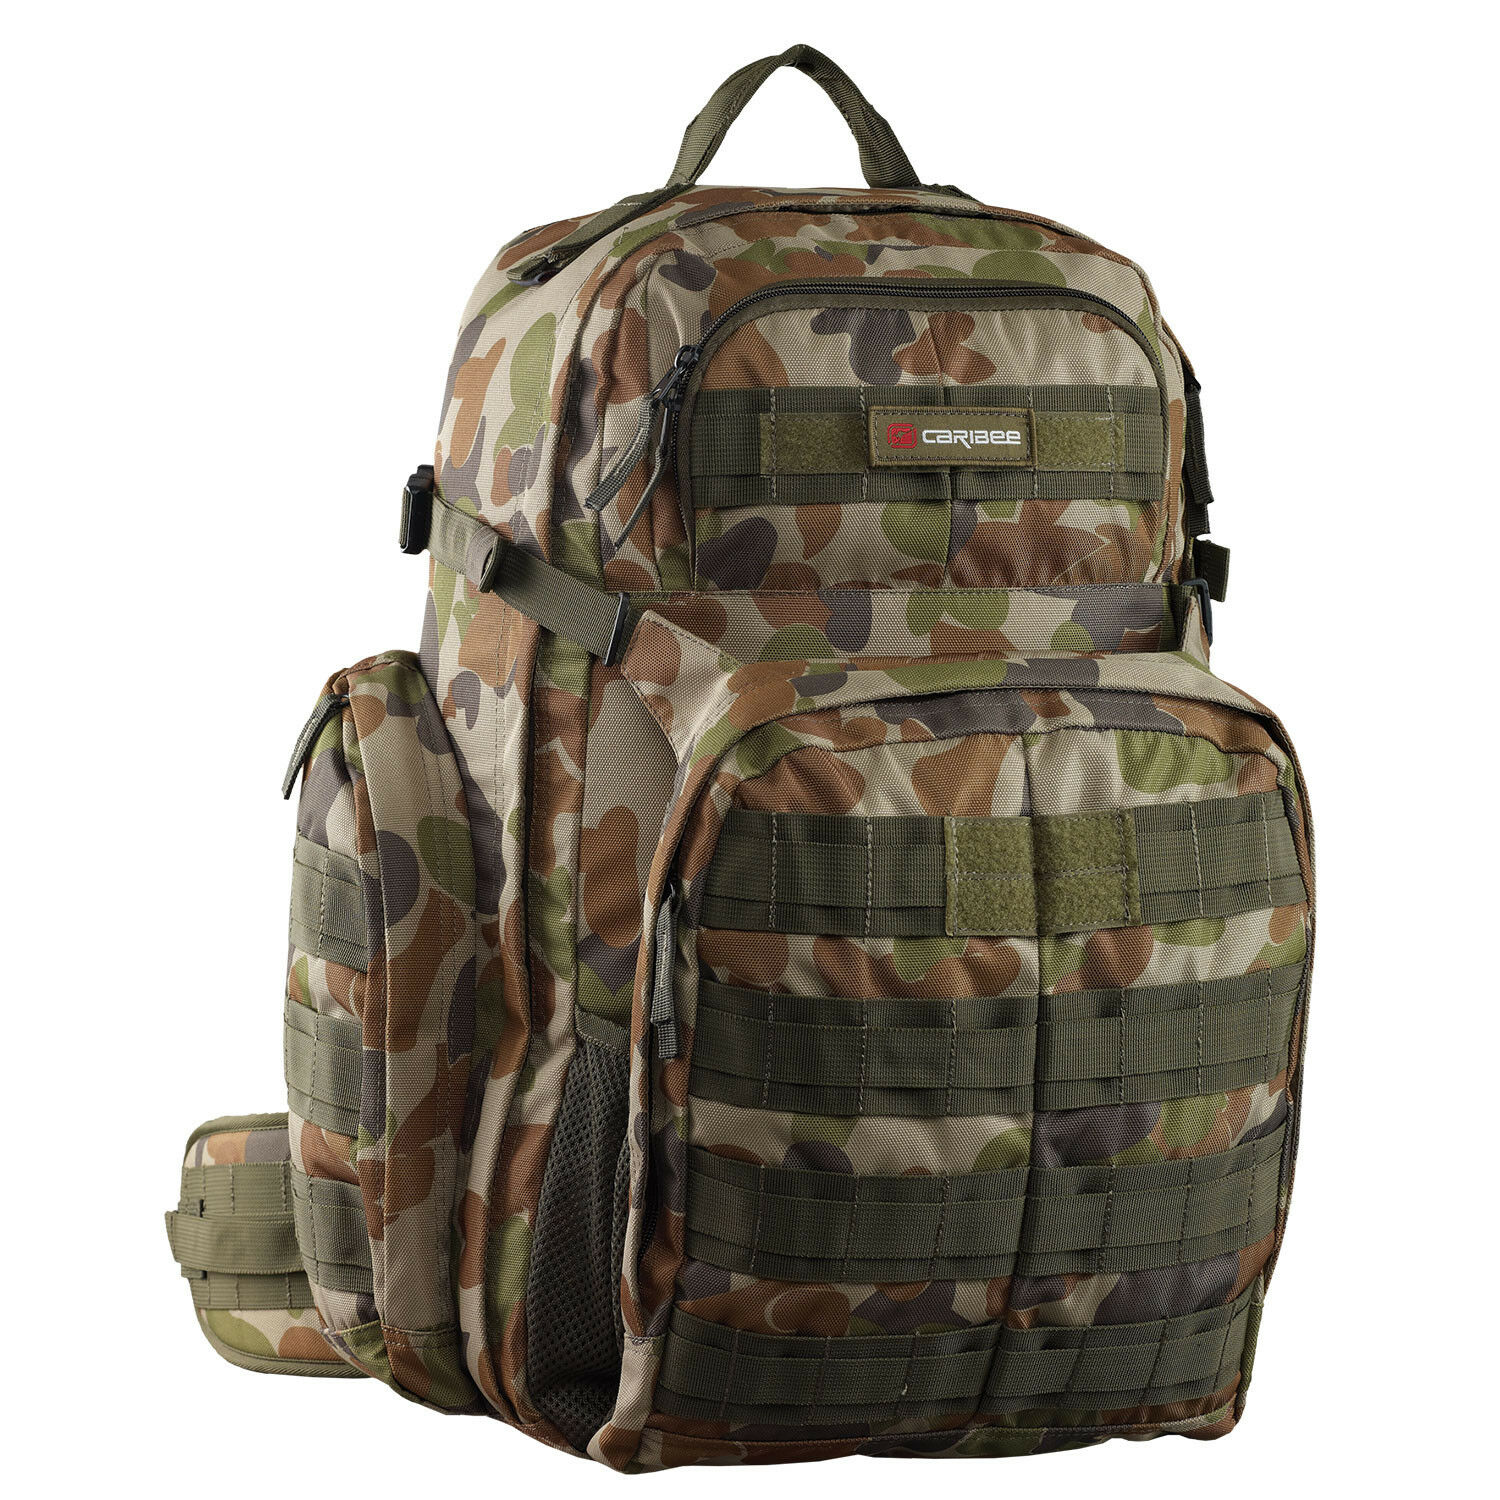 Caribee Heavy Duty Tactical Military OPS Backpack - 50L - Camo Aus